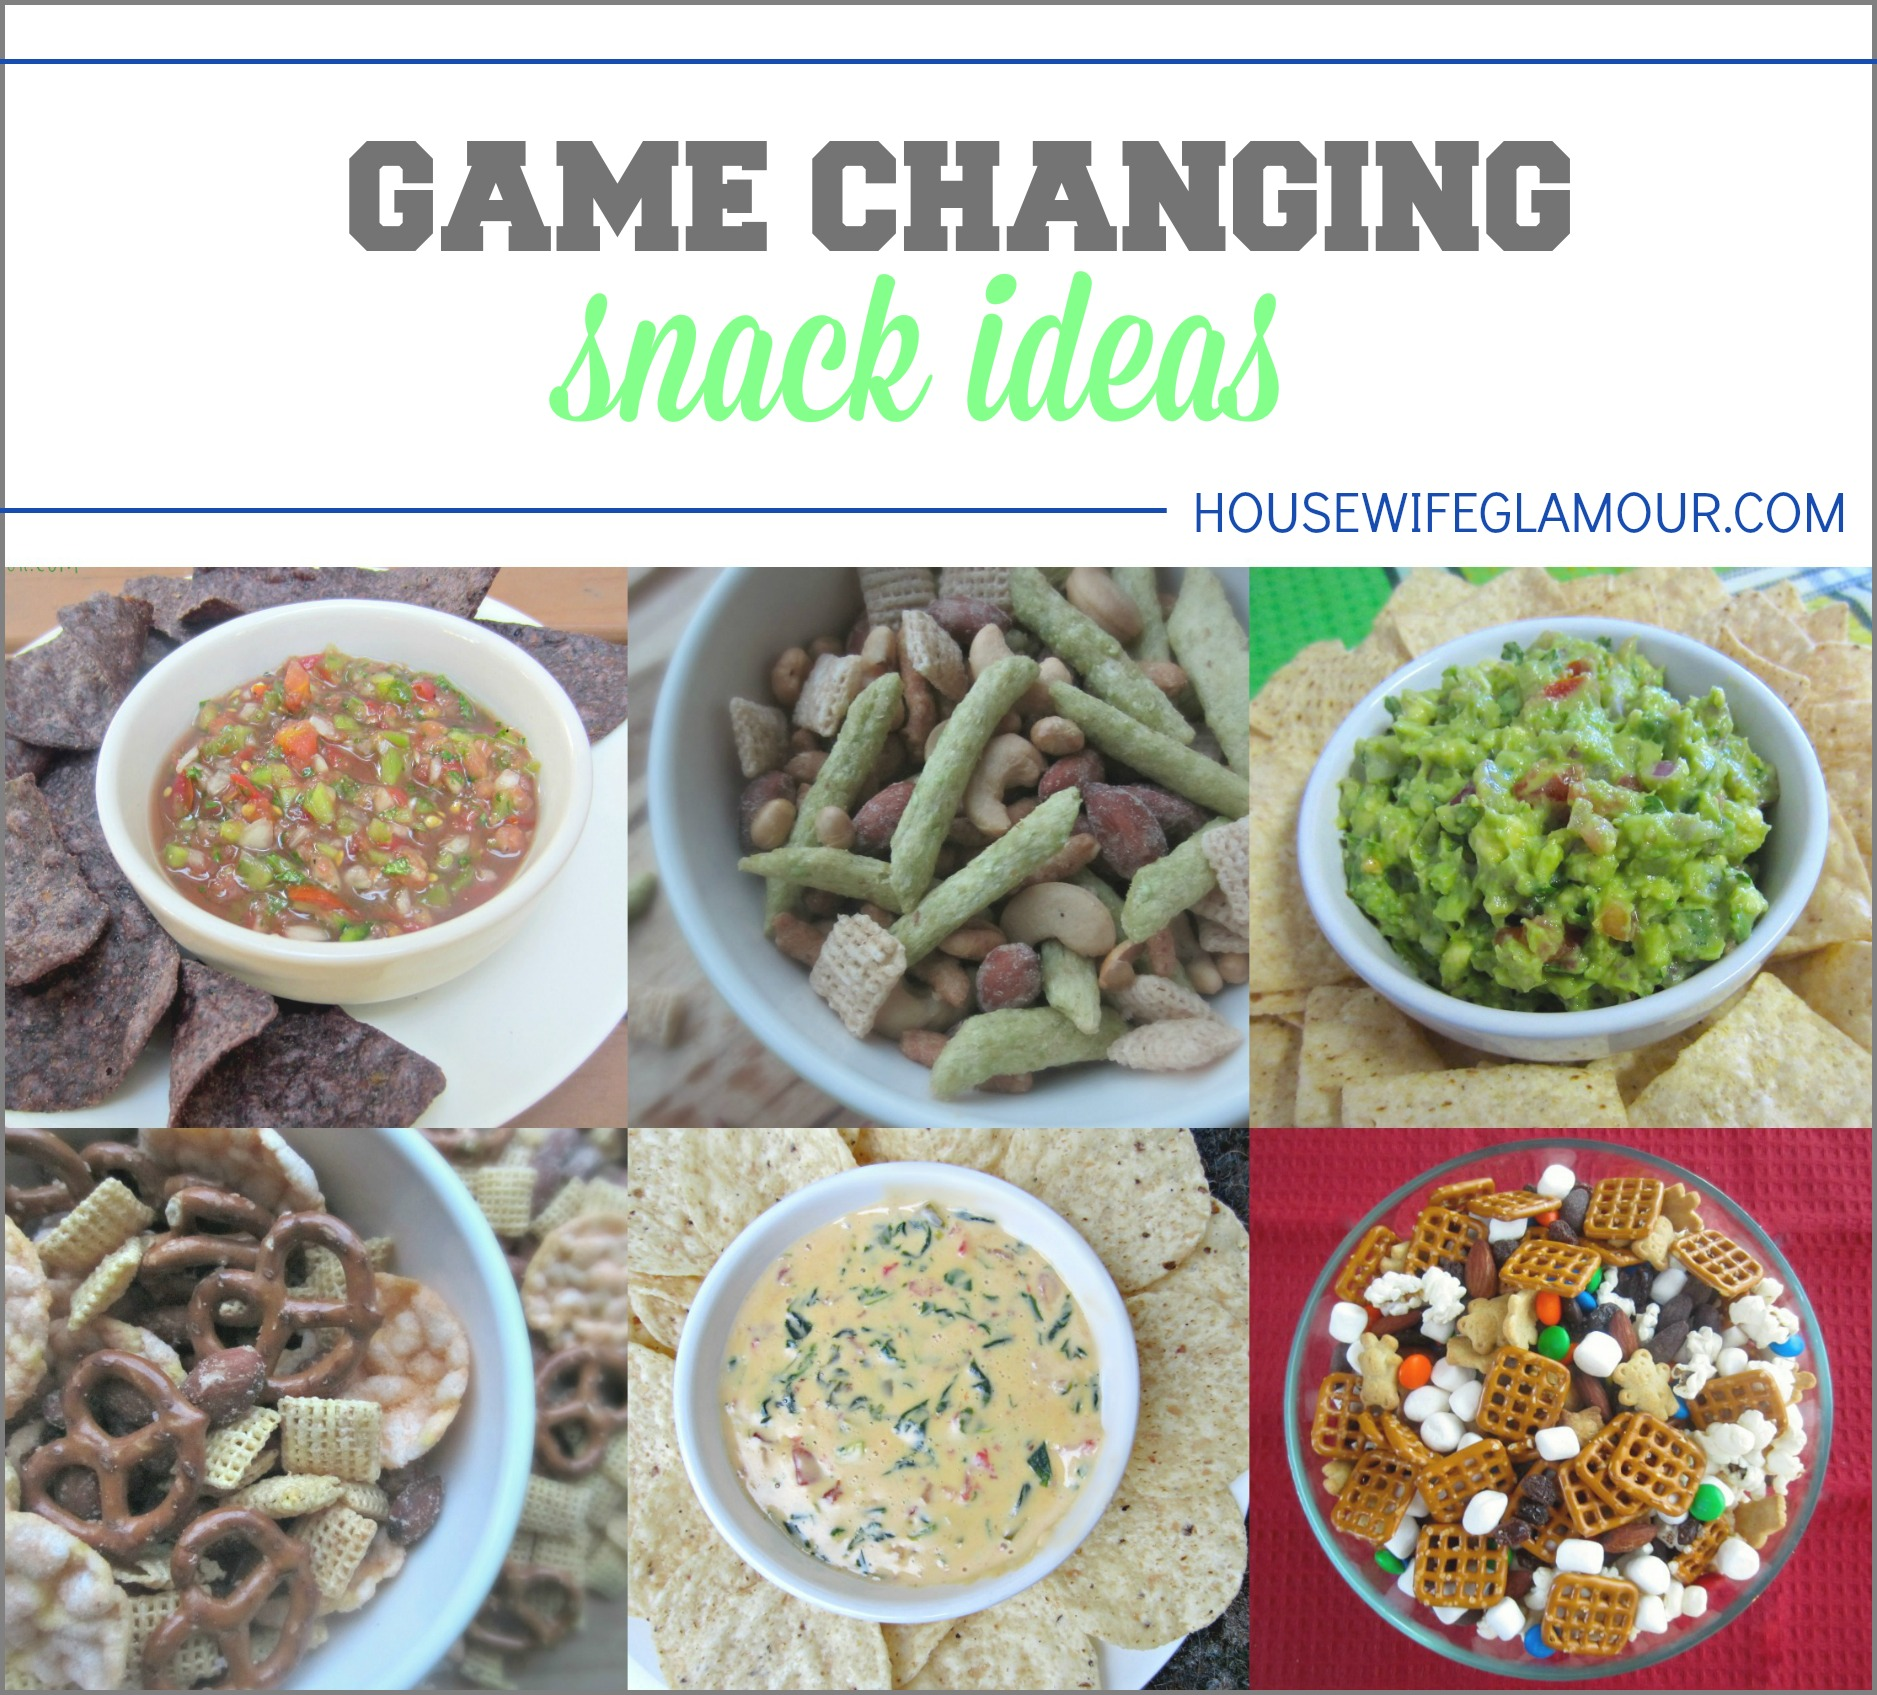 Game Changing Snack Ideas